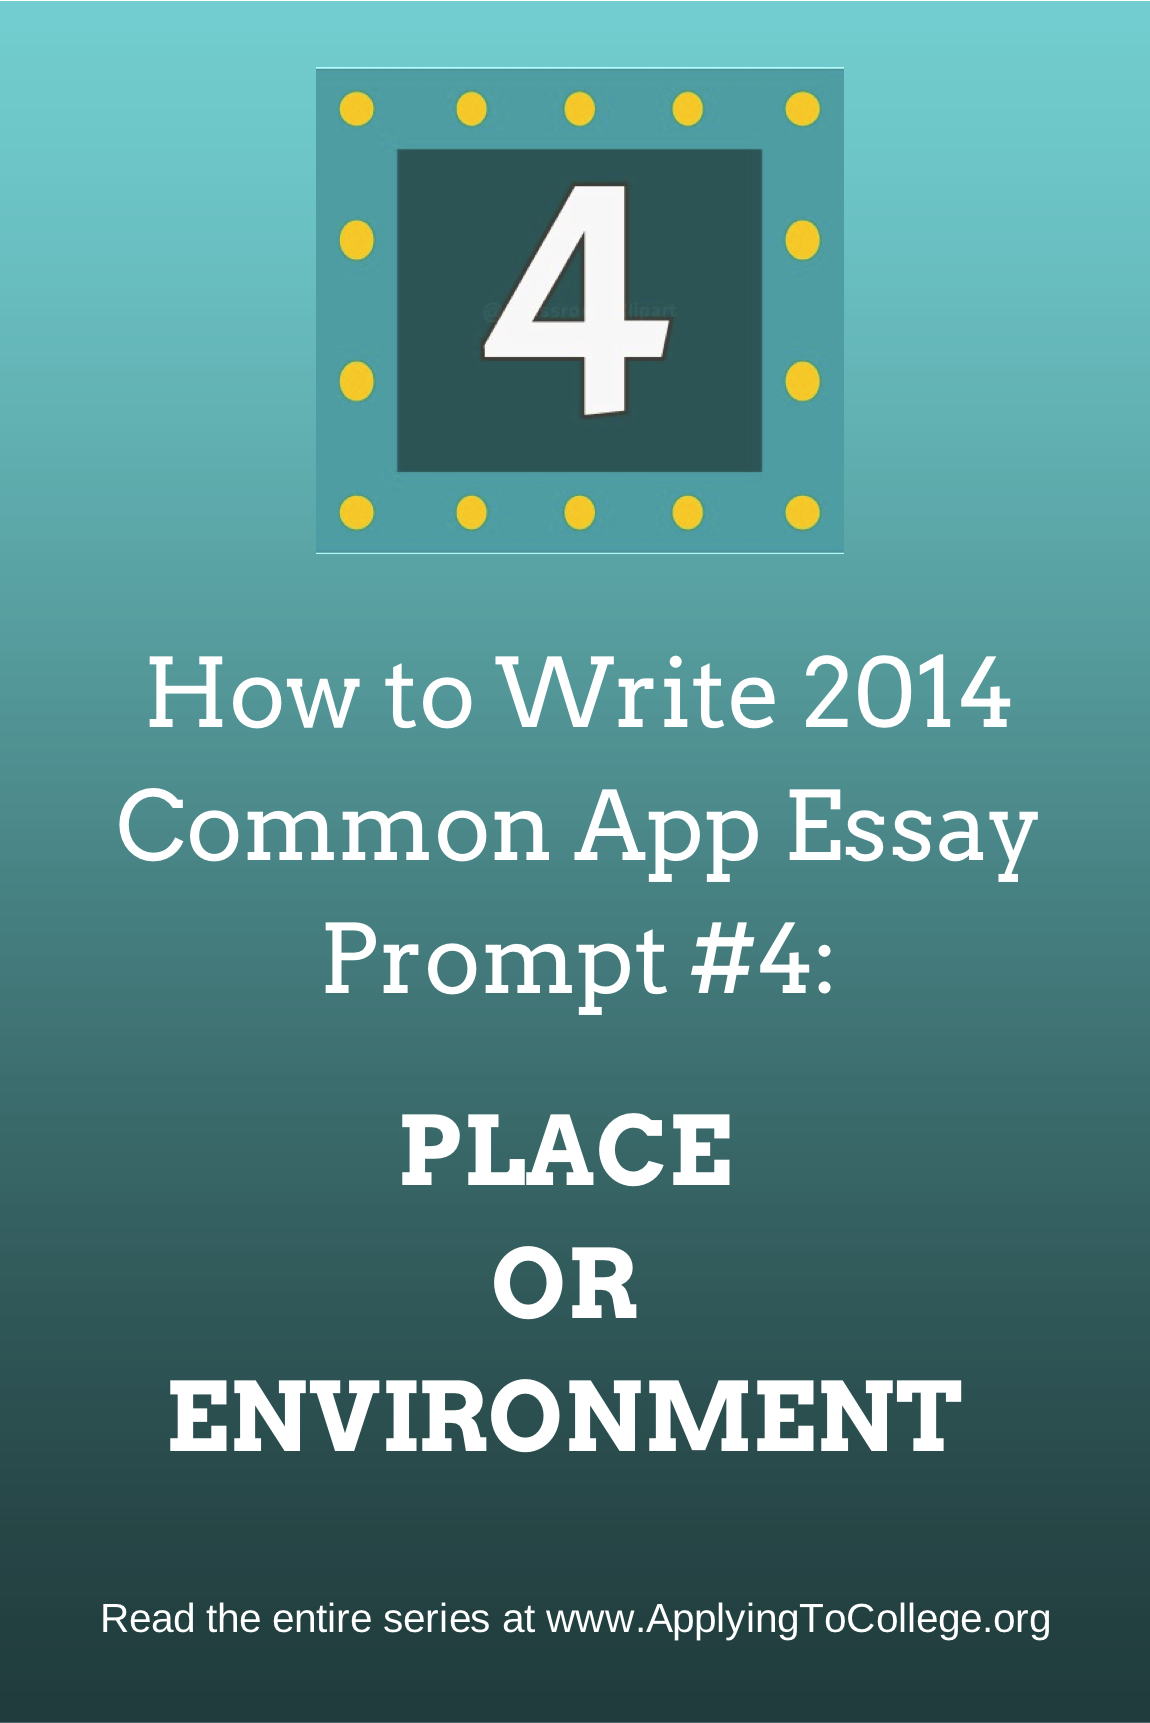 common app short essay prompt